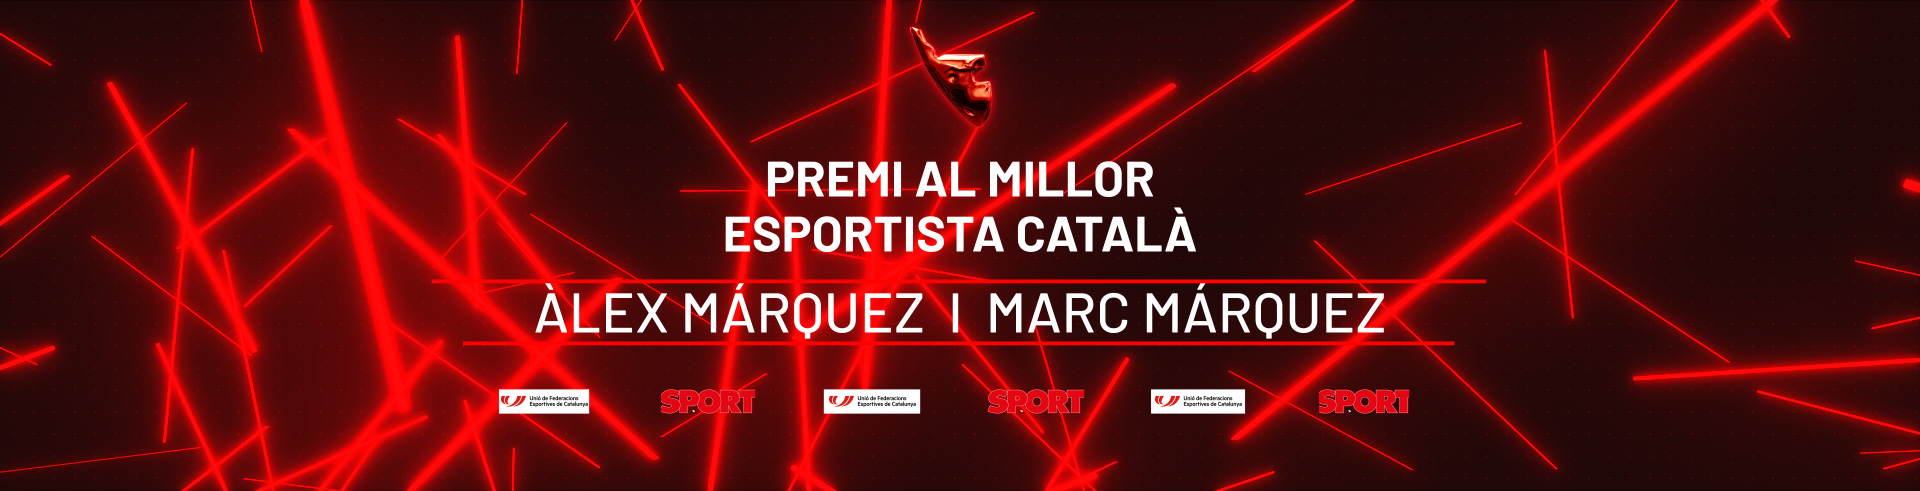 festa-esport-catala-2020-rebrand-motion-graphics-screenshot-05